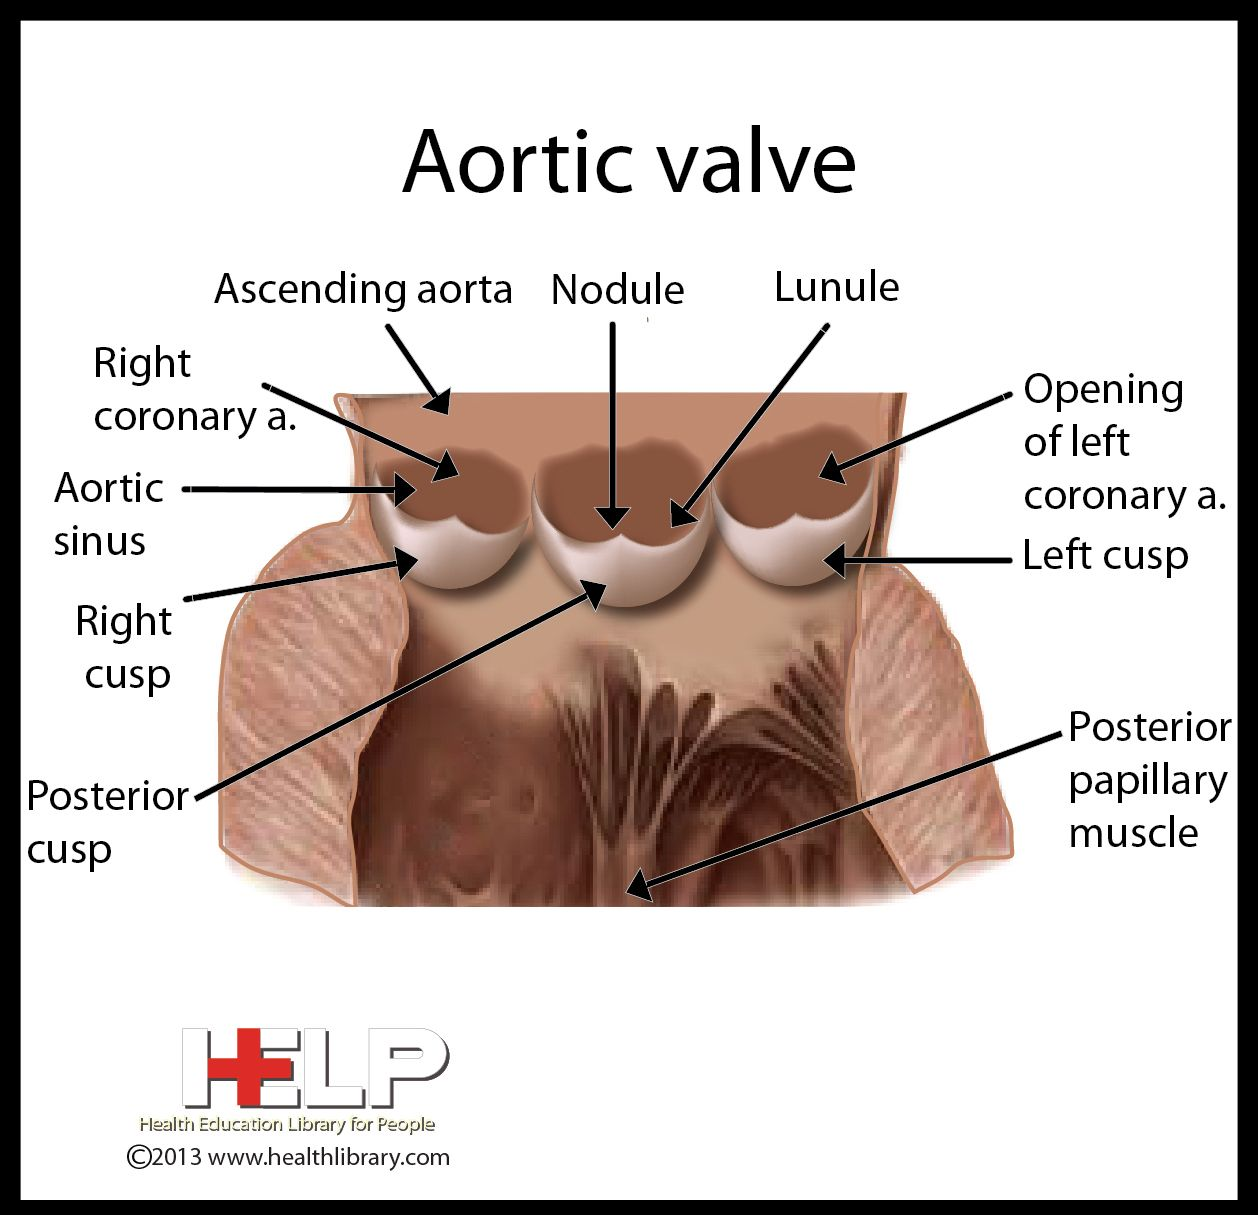 Aortic Valve Signs of heart disease, Heart conditions